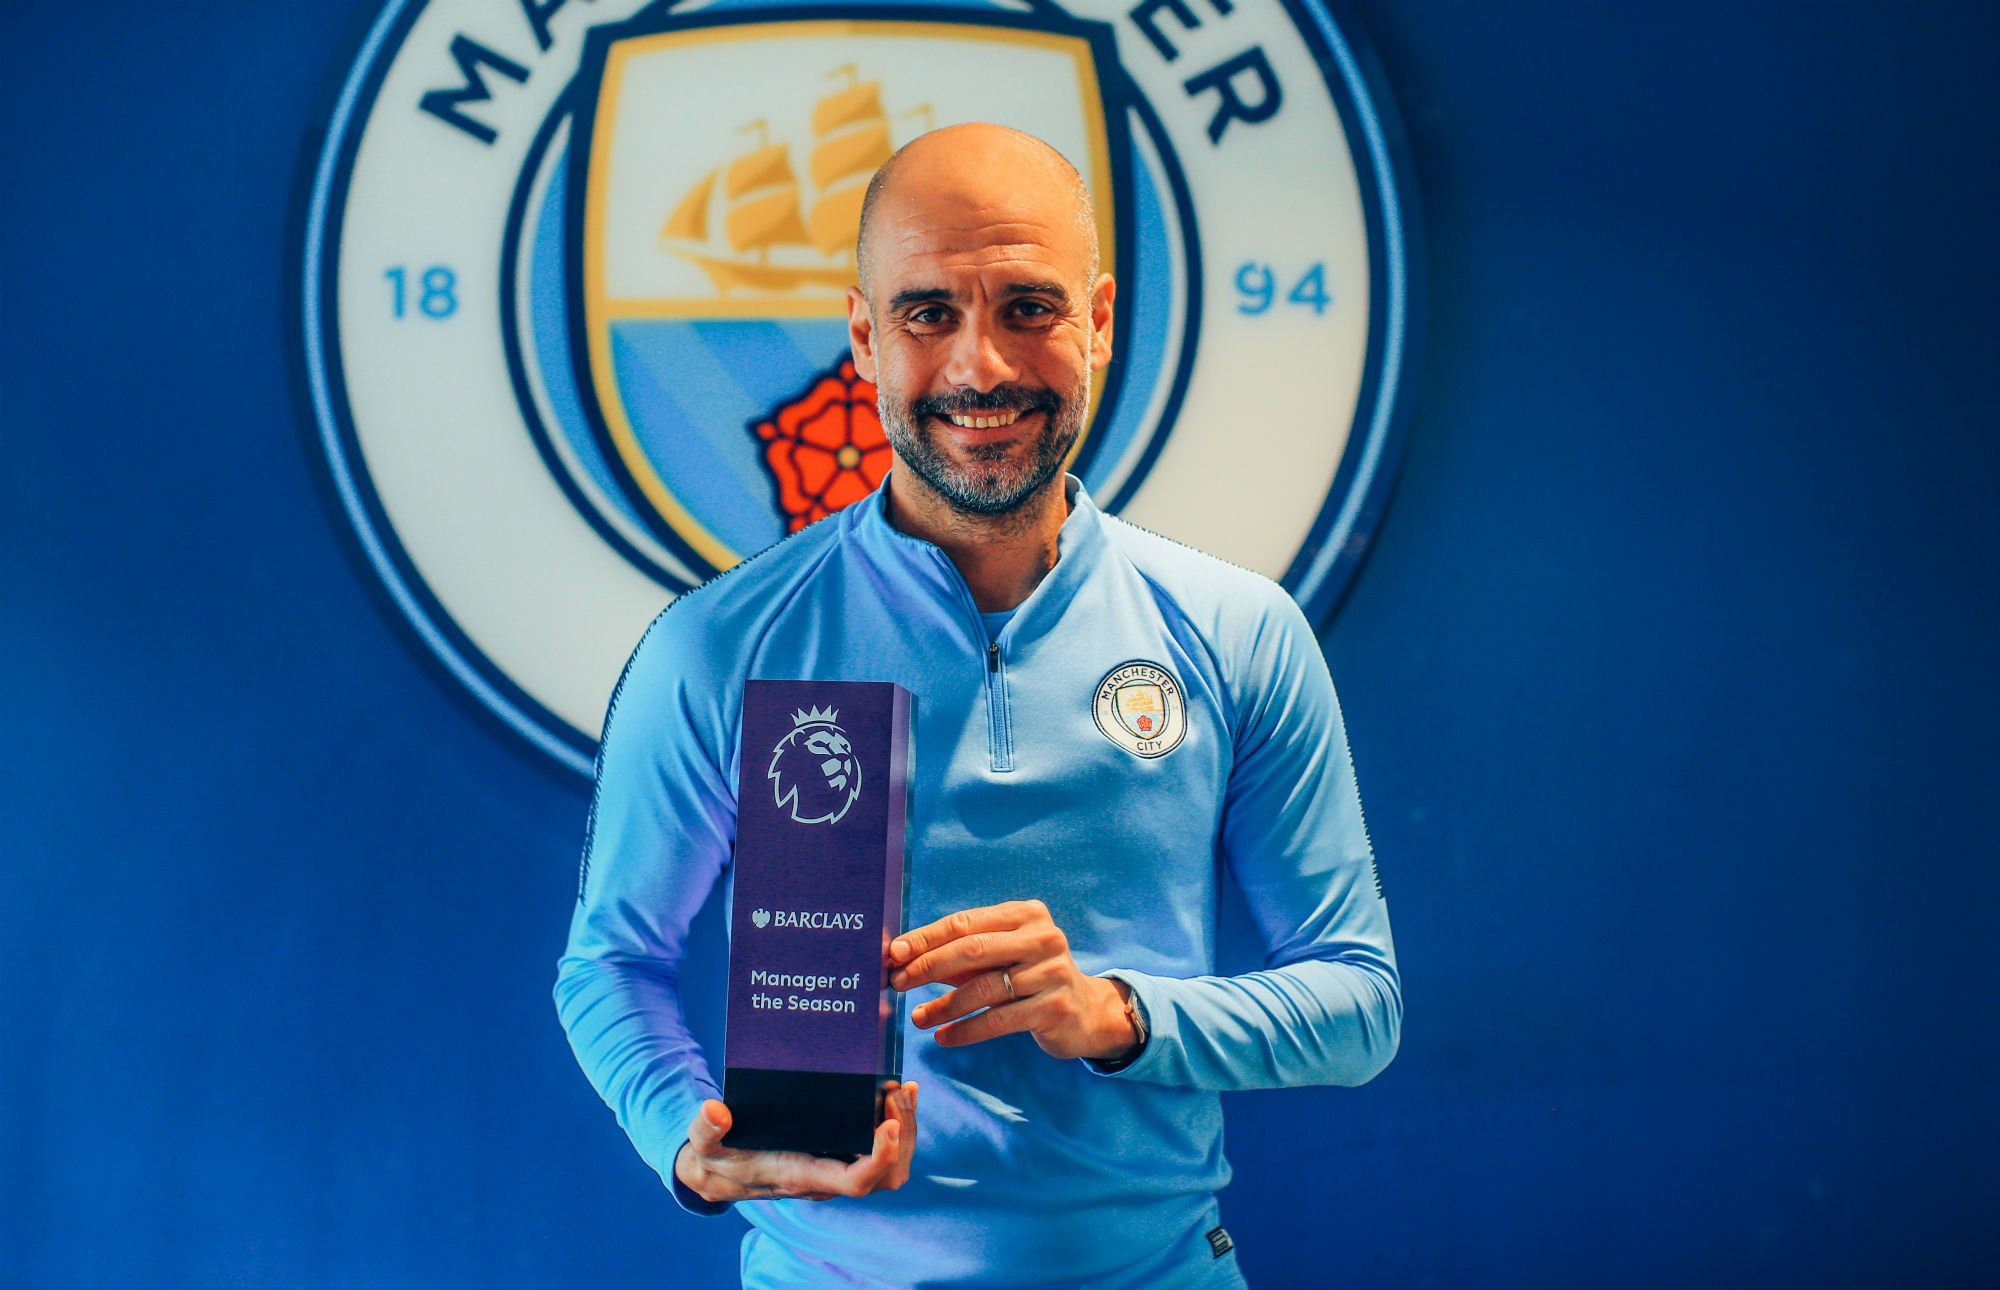 Guardiola Wins EPL Manager of the Season Award